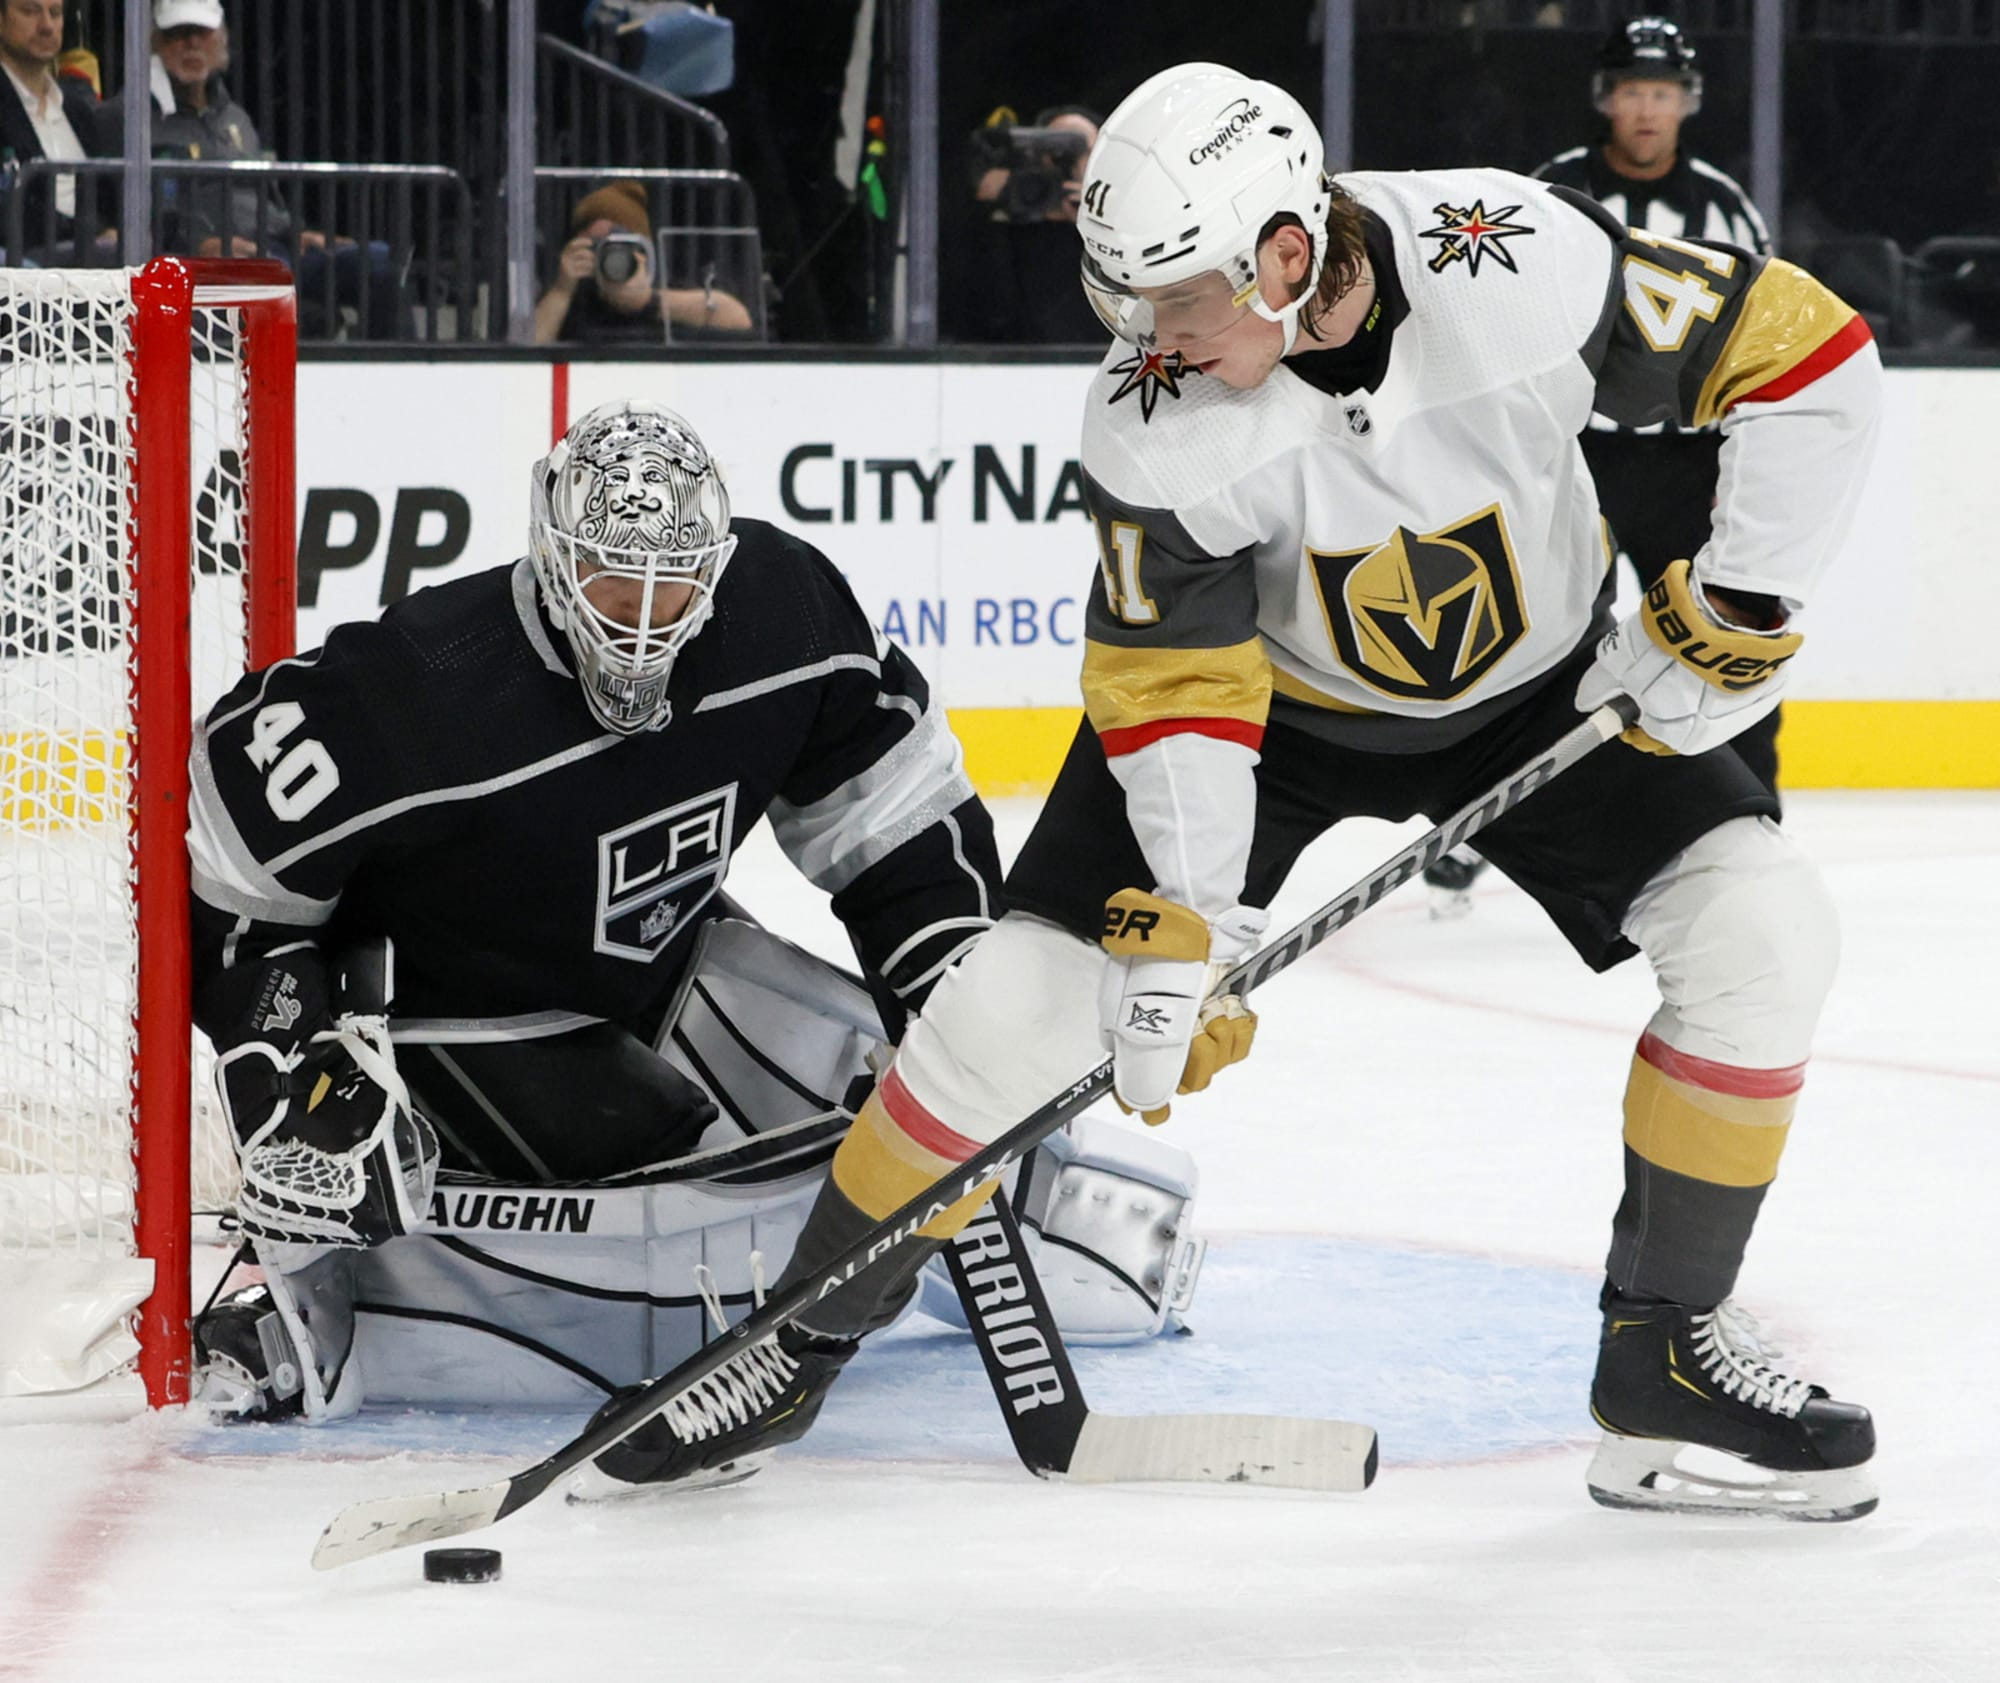 Nolan Patrick's Role with the Knights